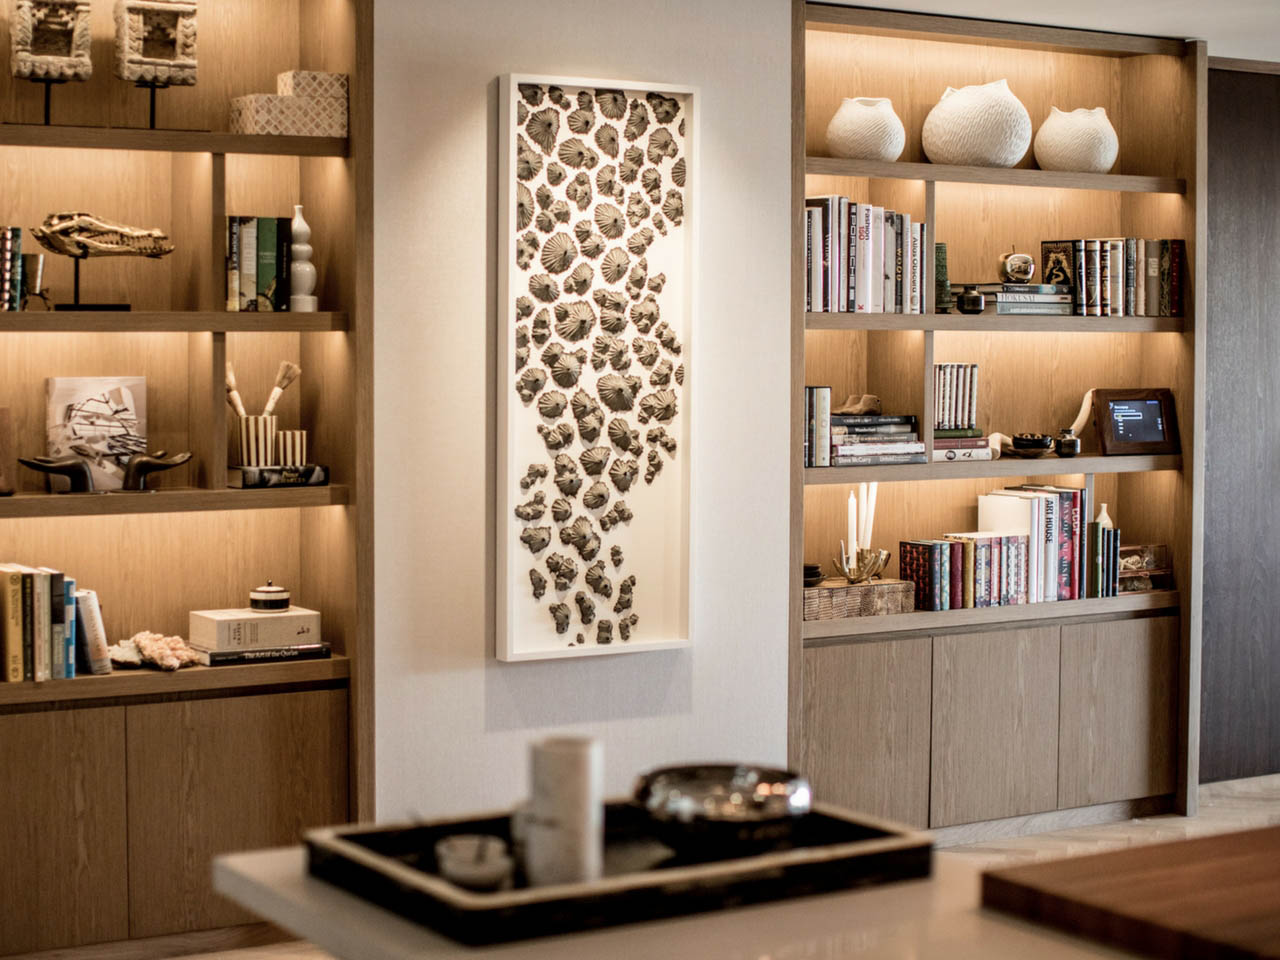 Lovely Brown Bookshelves With Framed Shell Sculpture On Wall.